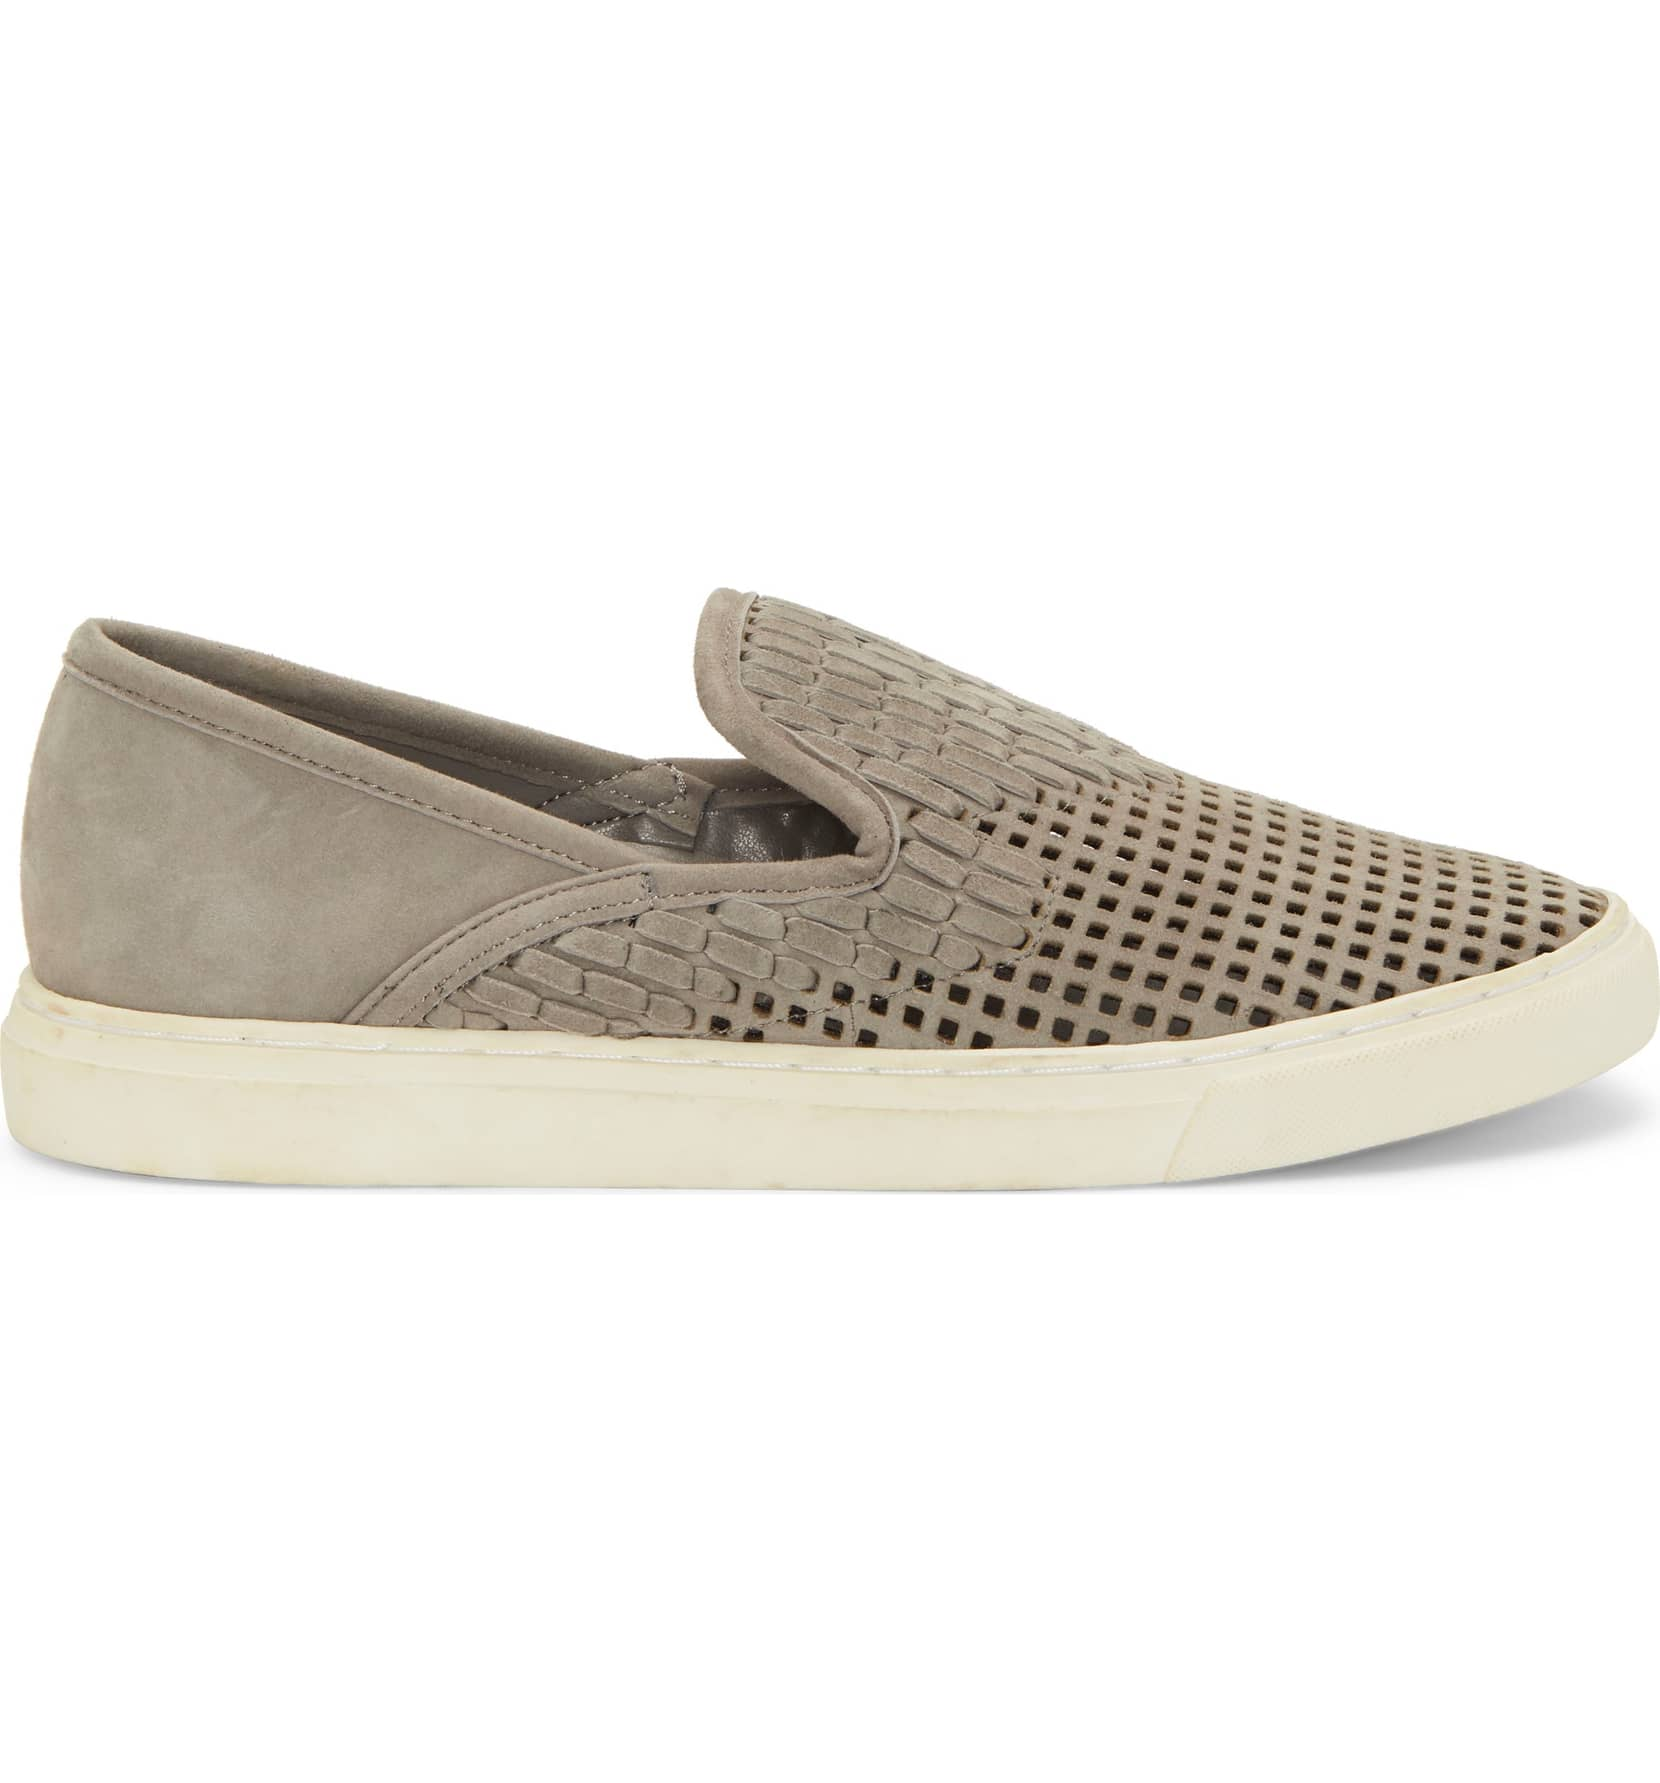 Vince-Camuto-Bristie-Storm-Grey-Leather-Woven-White-Sole-Slip-On-Sneakers thumbnail 38